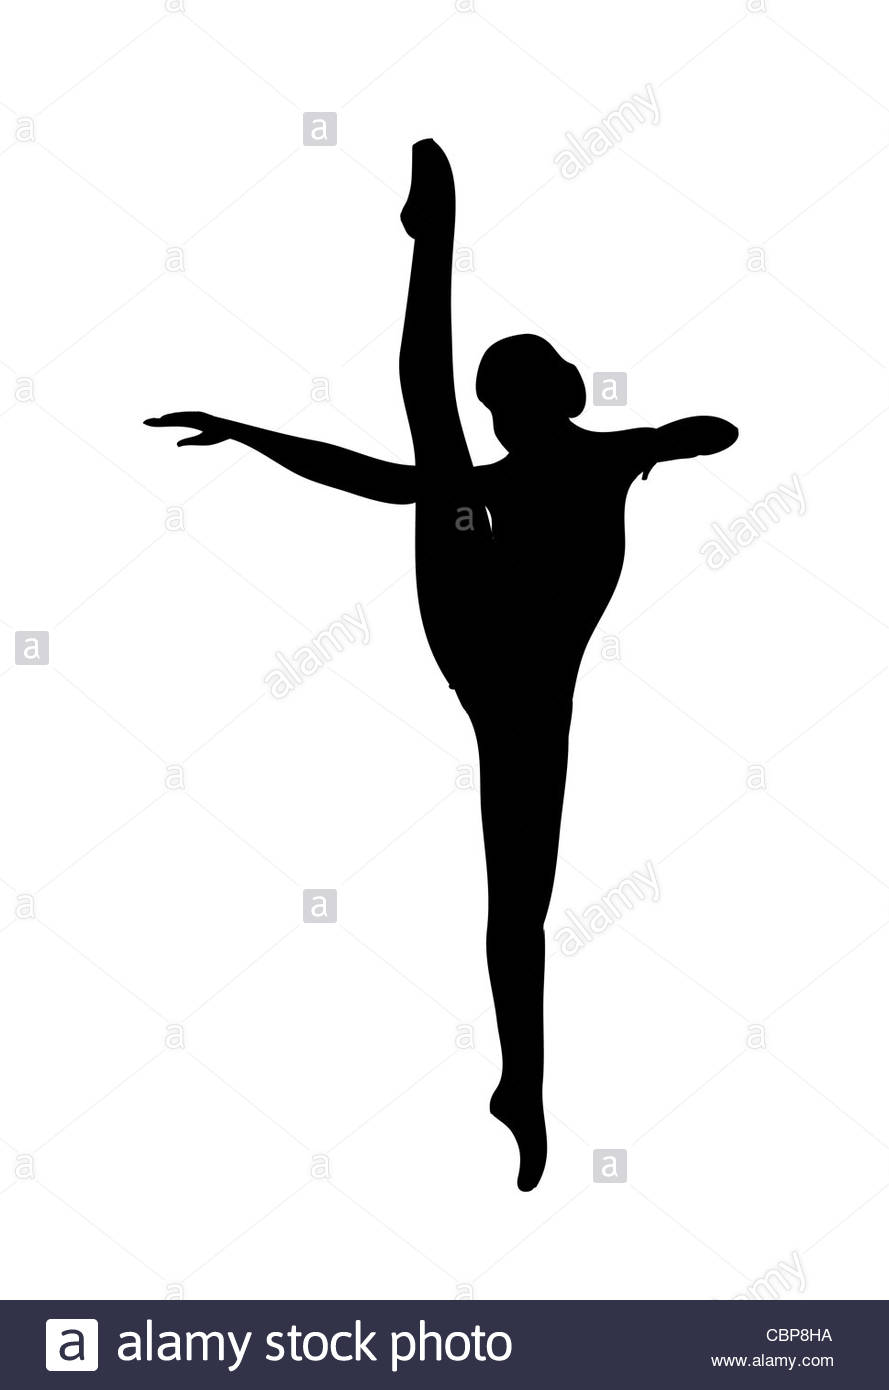 889x1390 Ballet Pose Silhouette Bw Illustration Stock Photo 41671654